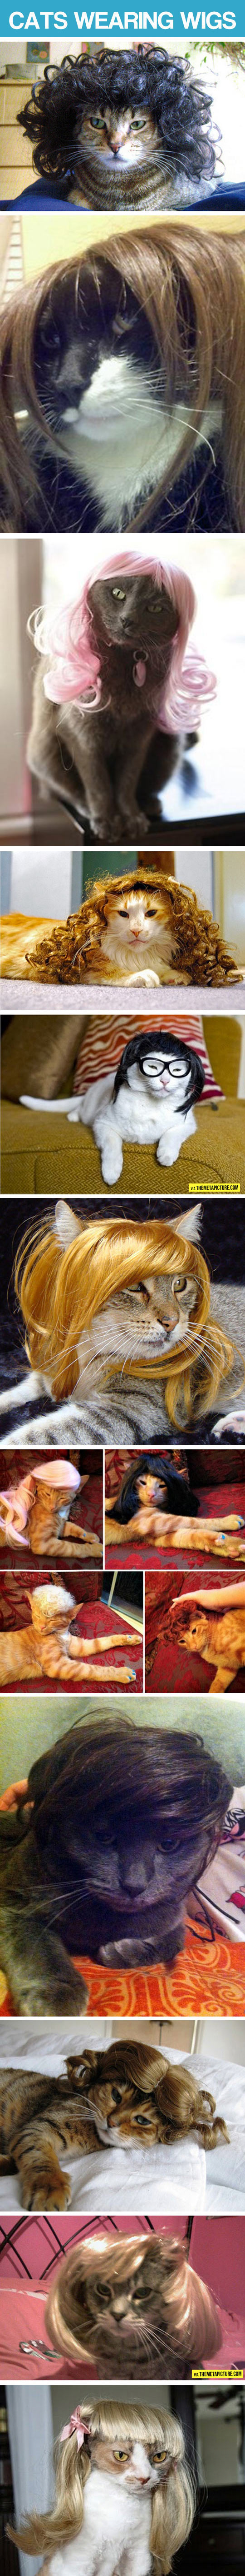 cool-cats-wearing-wigs-compilation